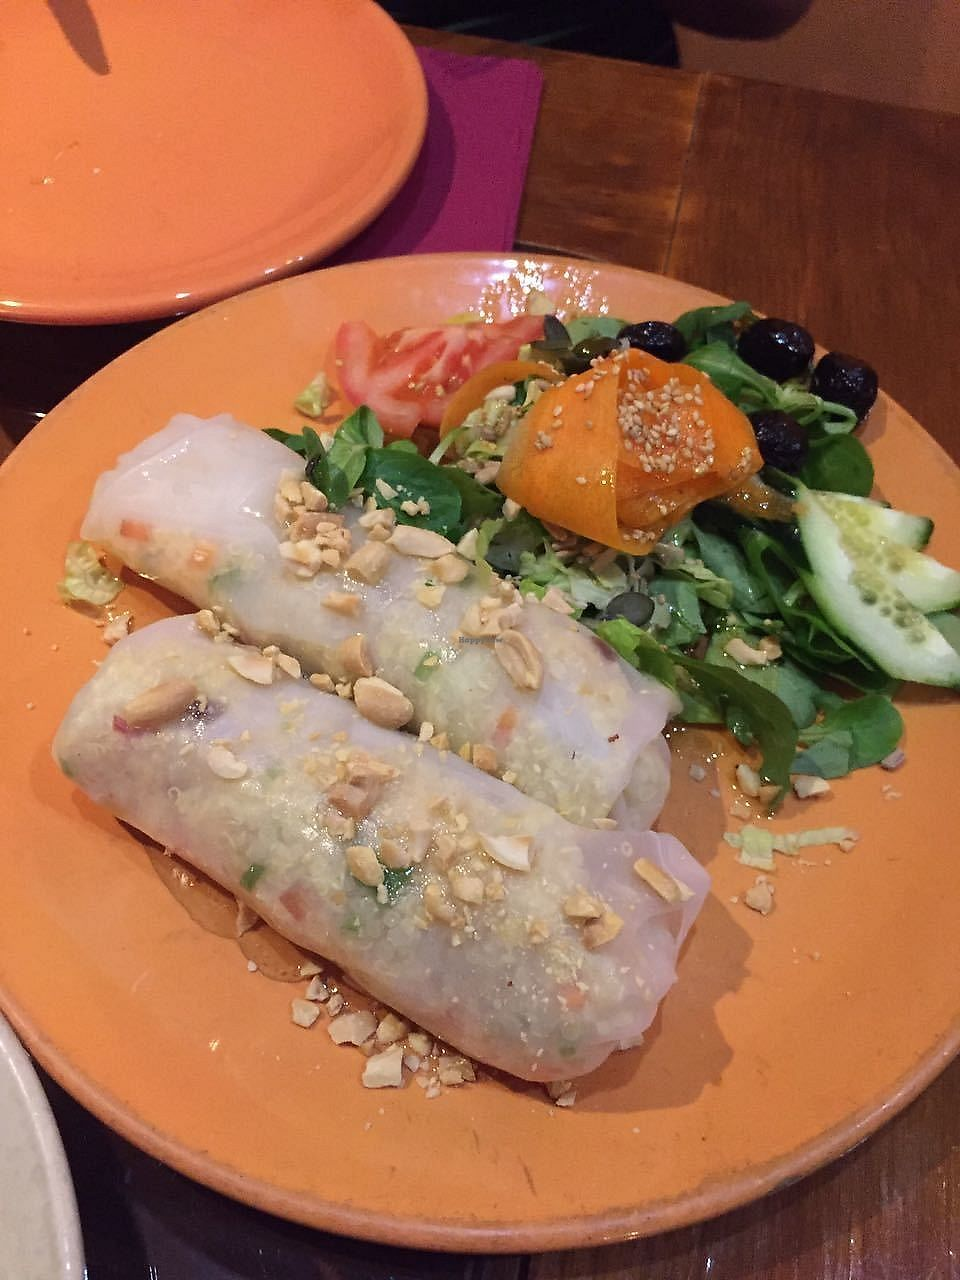 """Photo of Paprika  by <a href=""""/members/profile/FlokiTheCat"""">FlokiTheCat</a> <br/>Quinoa vietnamese rolls <br/> October 6, 2017  - <a href='/contact/abuse/image/26256/312355'>Report</a>"""